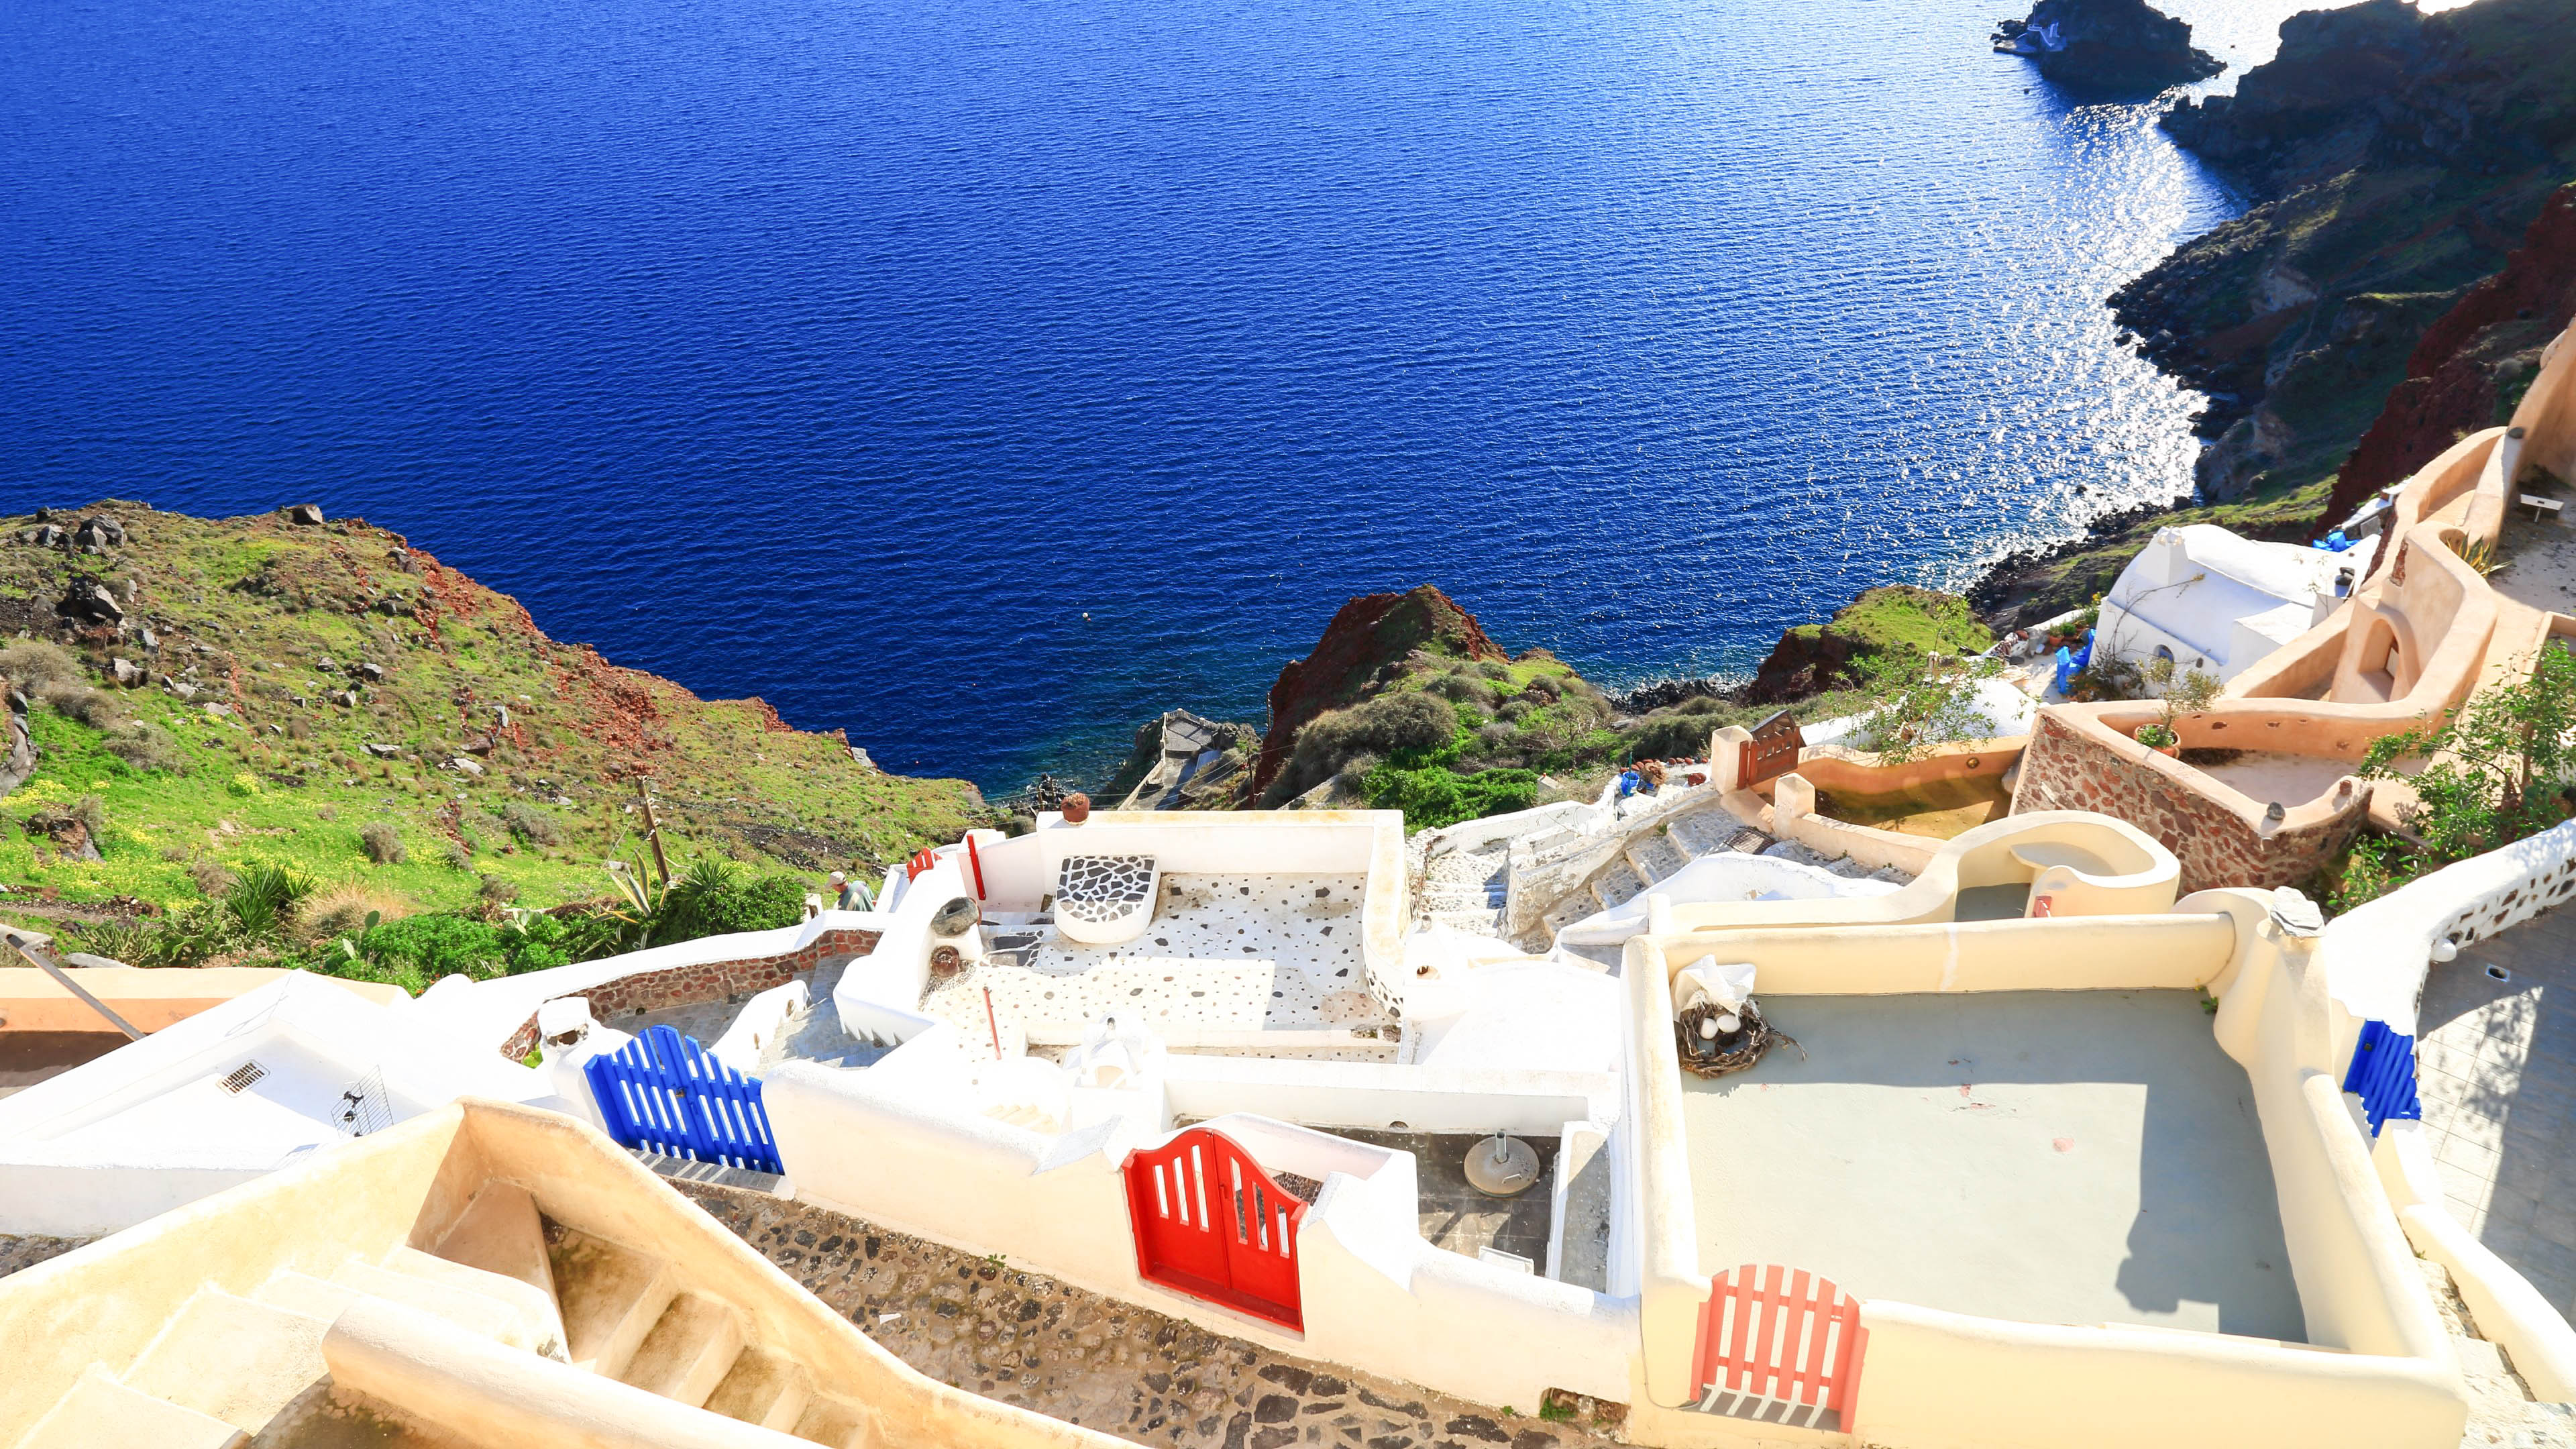 Santorini Amazing HD Wallpapers High Resolution   All HD Wallpapers 3840x2160